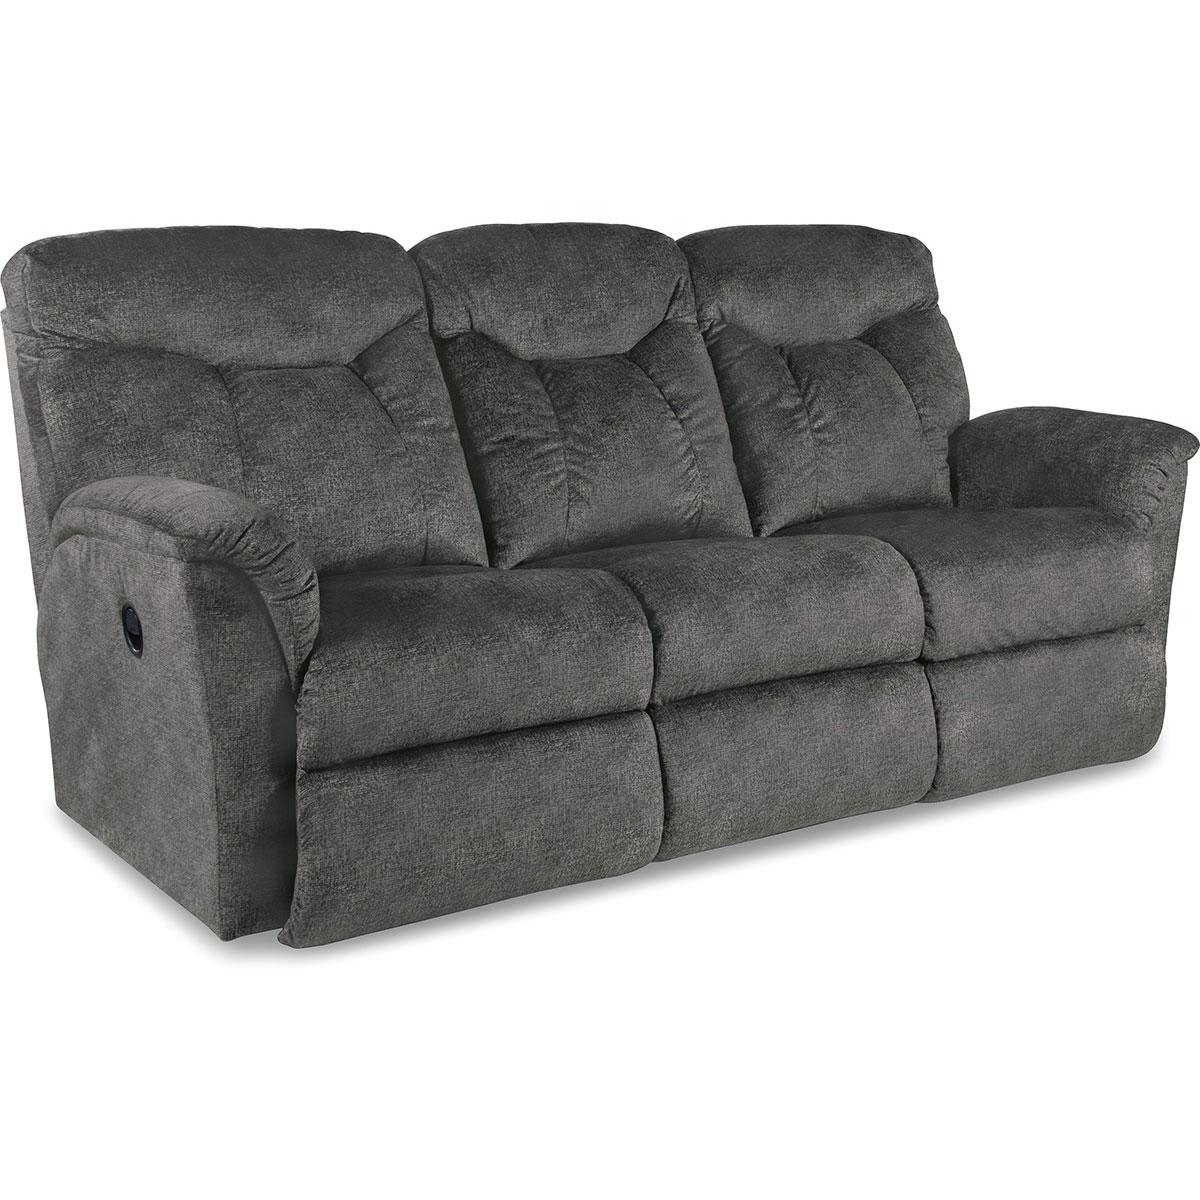 Sofas Center : Dsc01490 2 Z Boy Collins Sectional Lazy Furniture With Collins Sofas (Image 17 of 20)